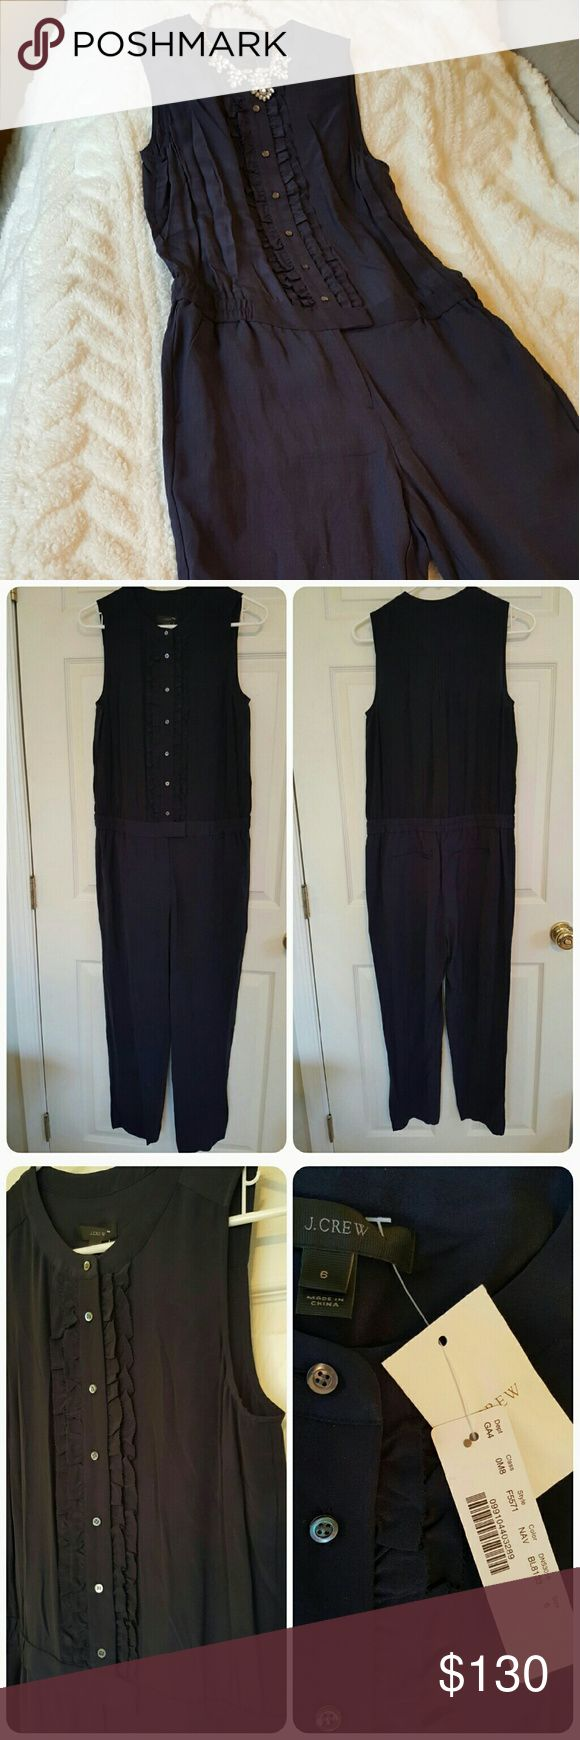 NWT J. Crew Navy Jumpsuit. Size 6. NWT J. Crew Navy Ruffle-front Jumpsuit! Size 6. Never worn! Open to offers! 😊 J. Crew Pants Jumpsuits & Rompers